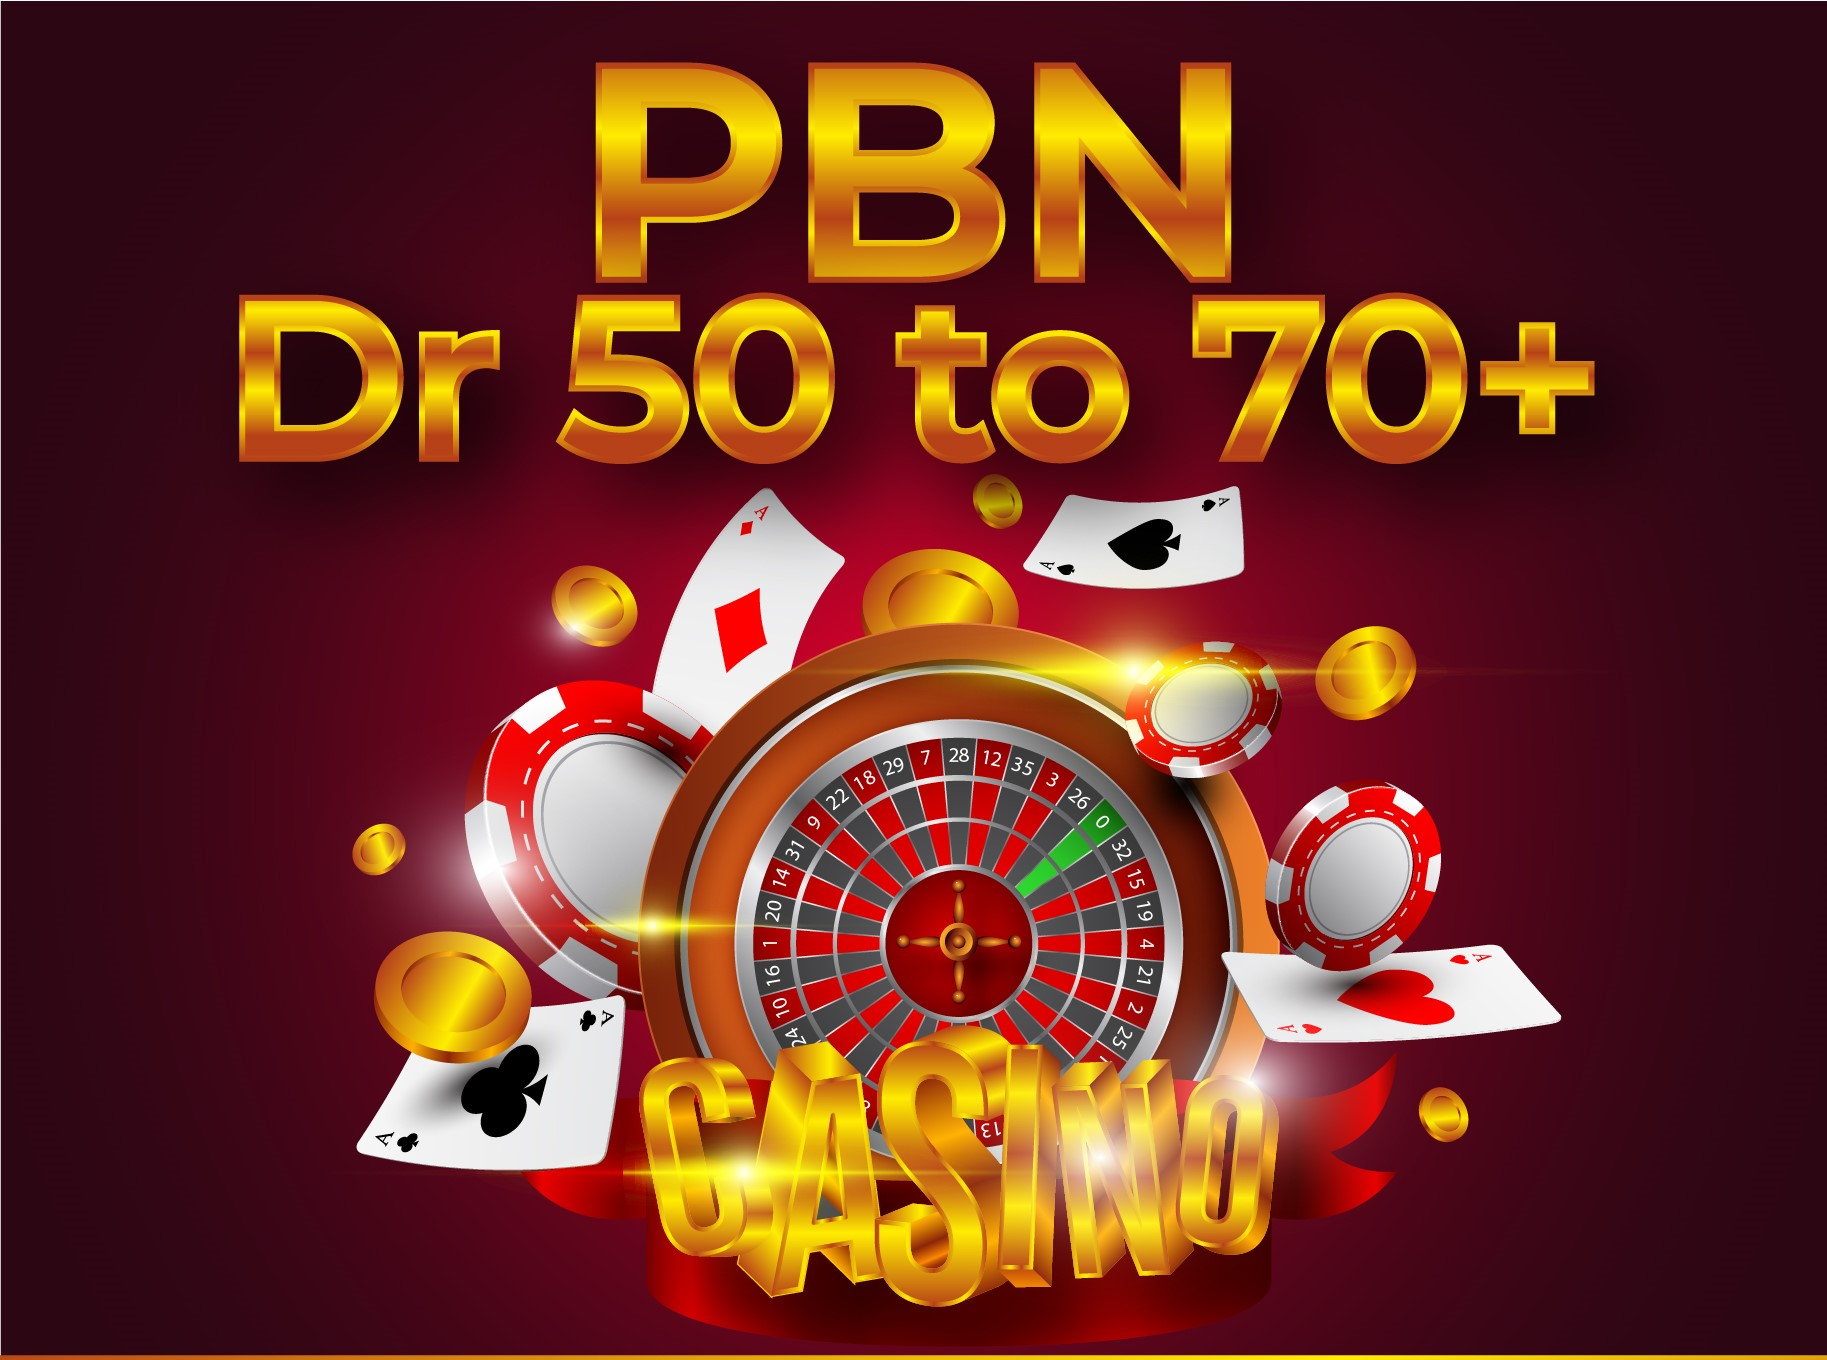 Do High-Quality 30 PBN DR 50 to 70+ Backlinks For Casino,  Gambling,  Betting,  & Poker Sites